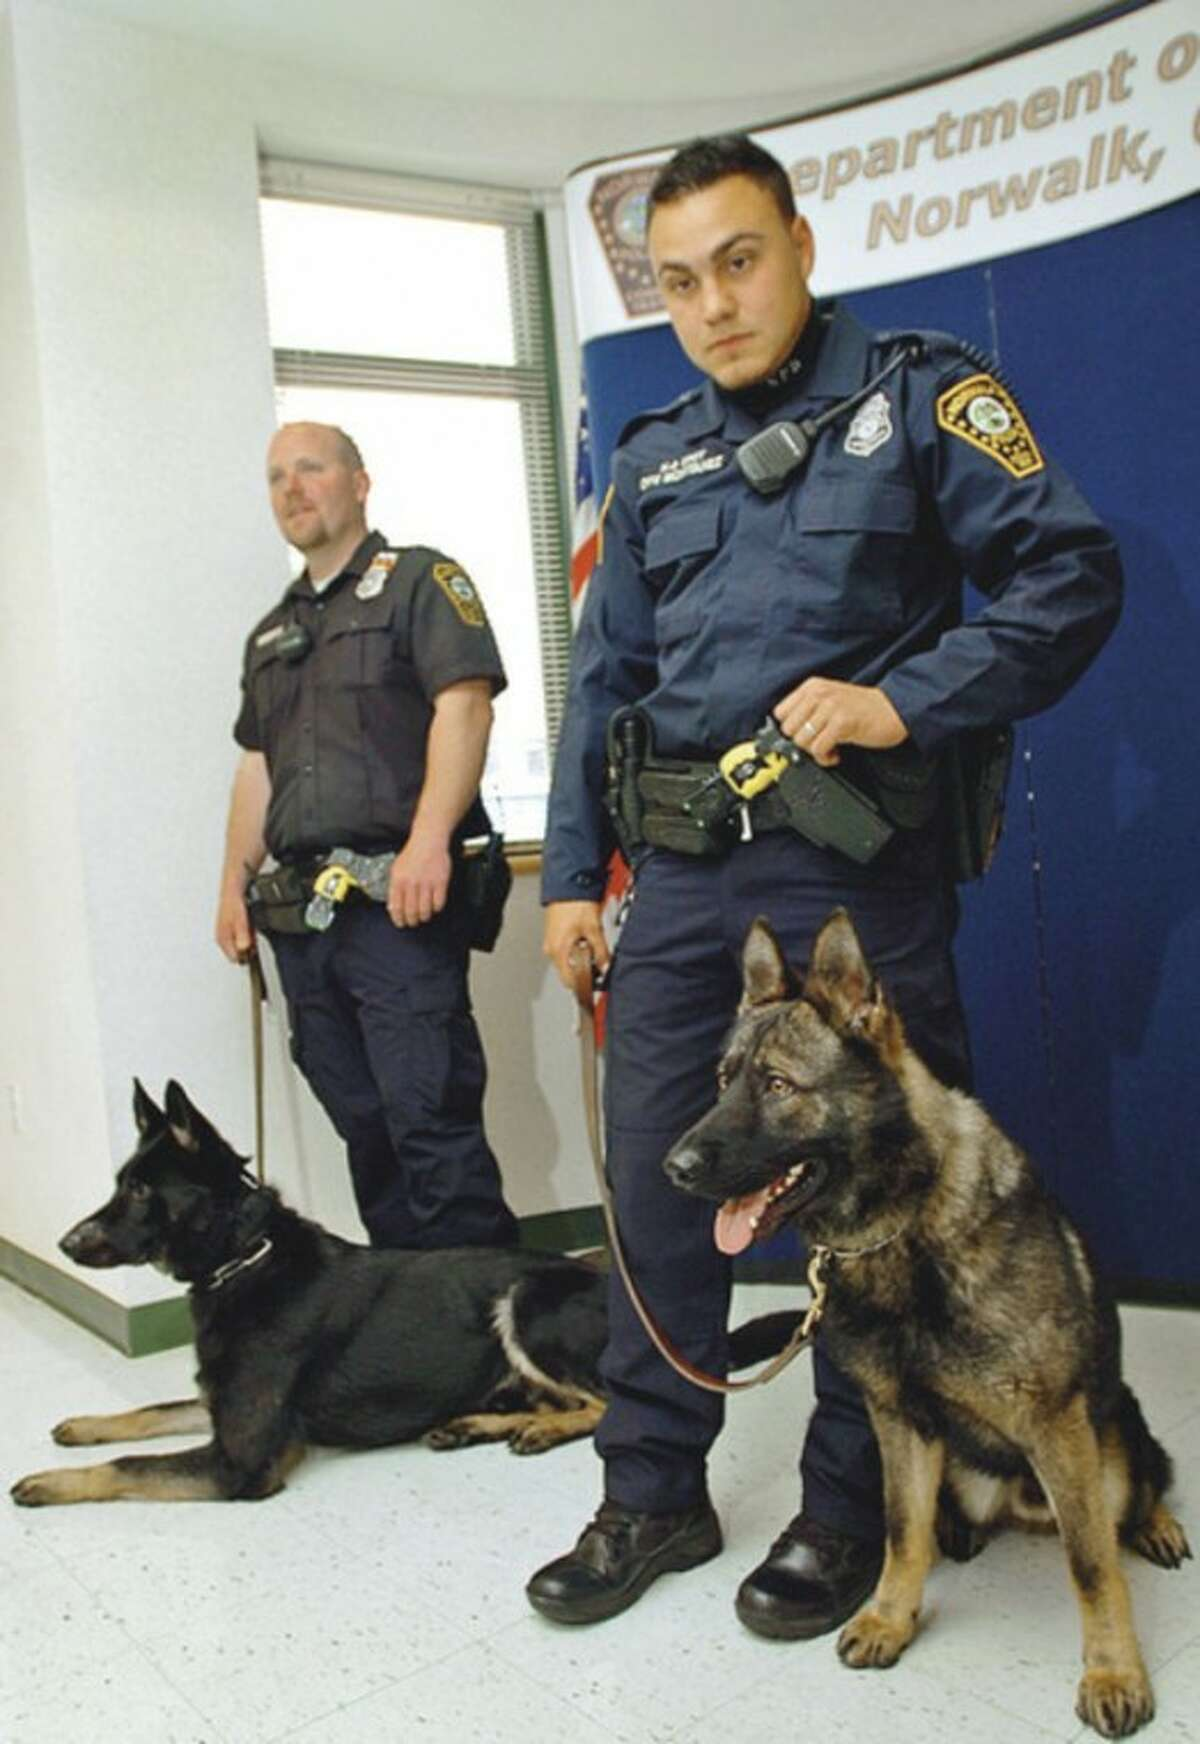 Officer Garrett Gruber with his new police dog, Kimbo and Officer Richard Montanez and his dog, Kai. Hour photo / Erik Trautmann